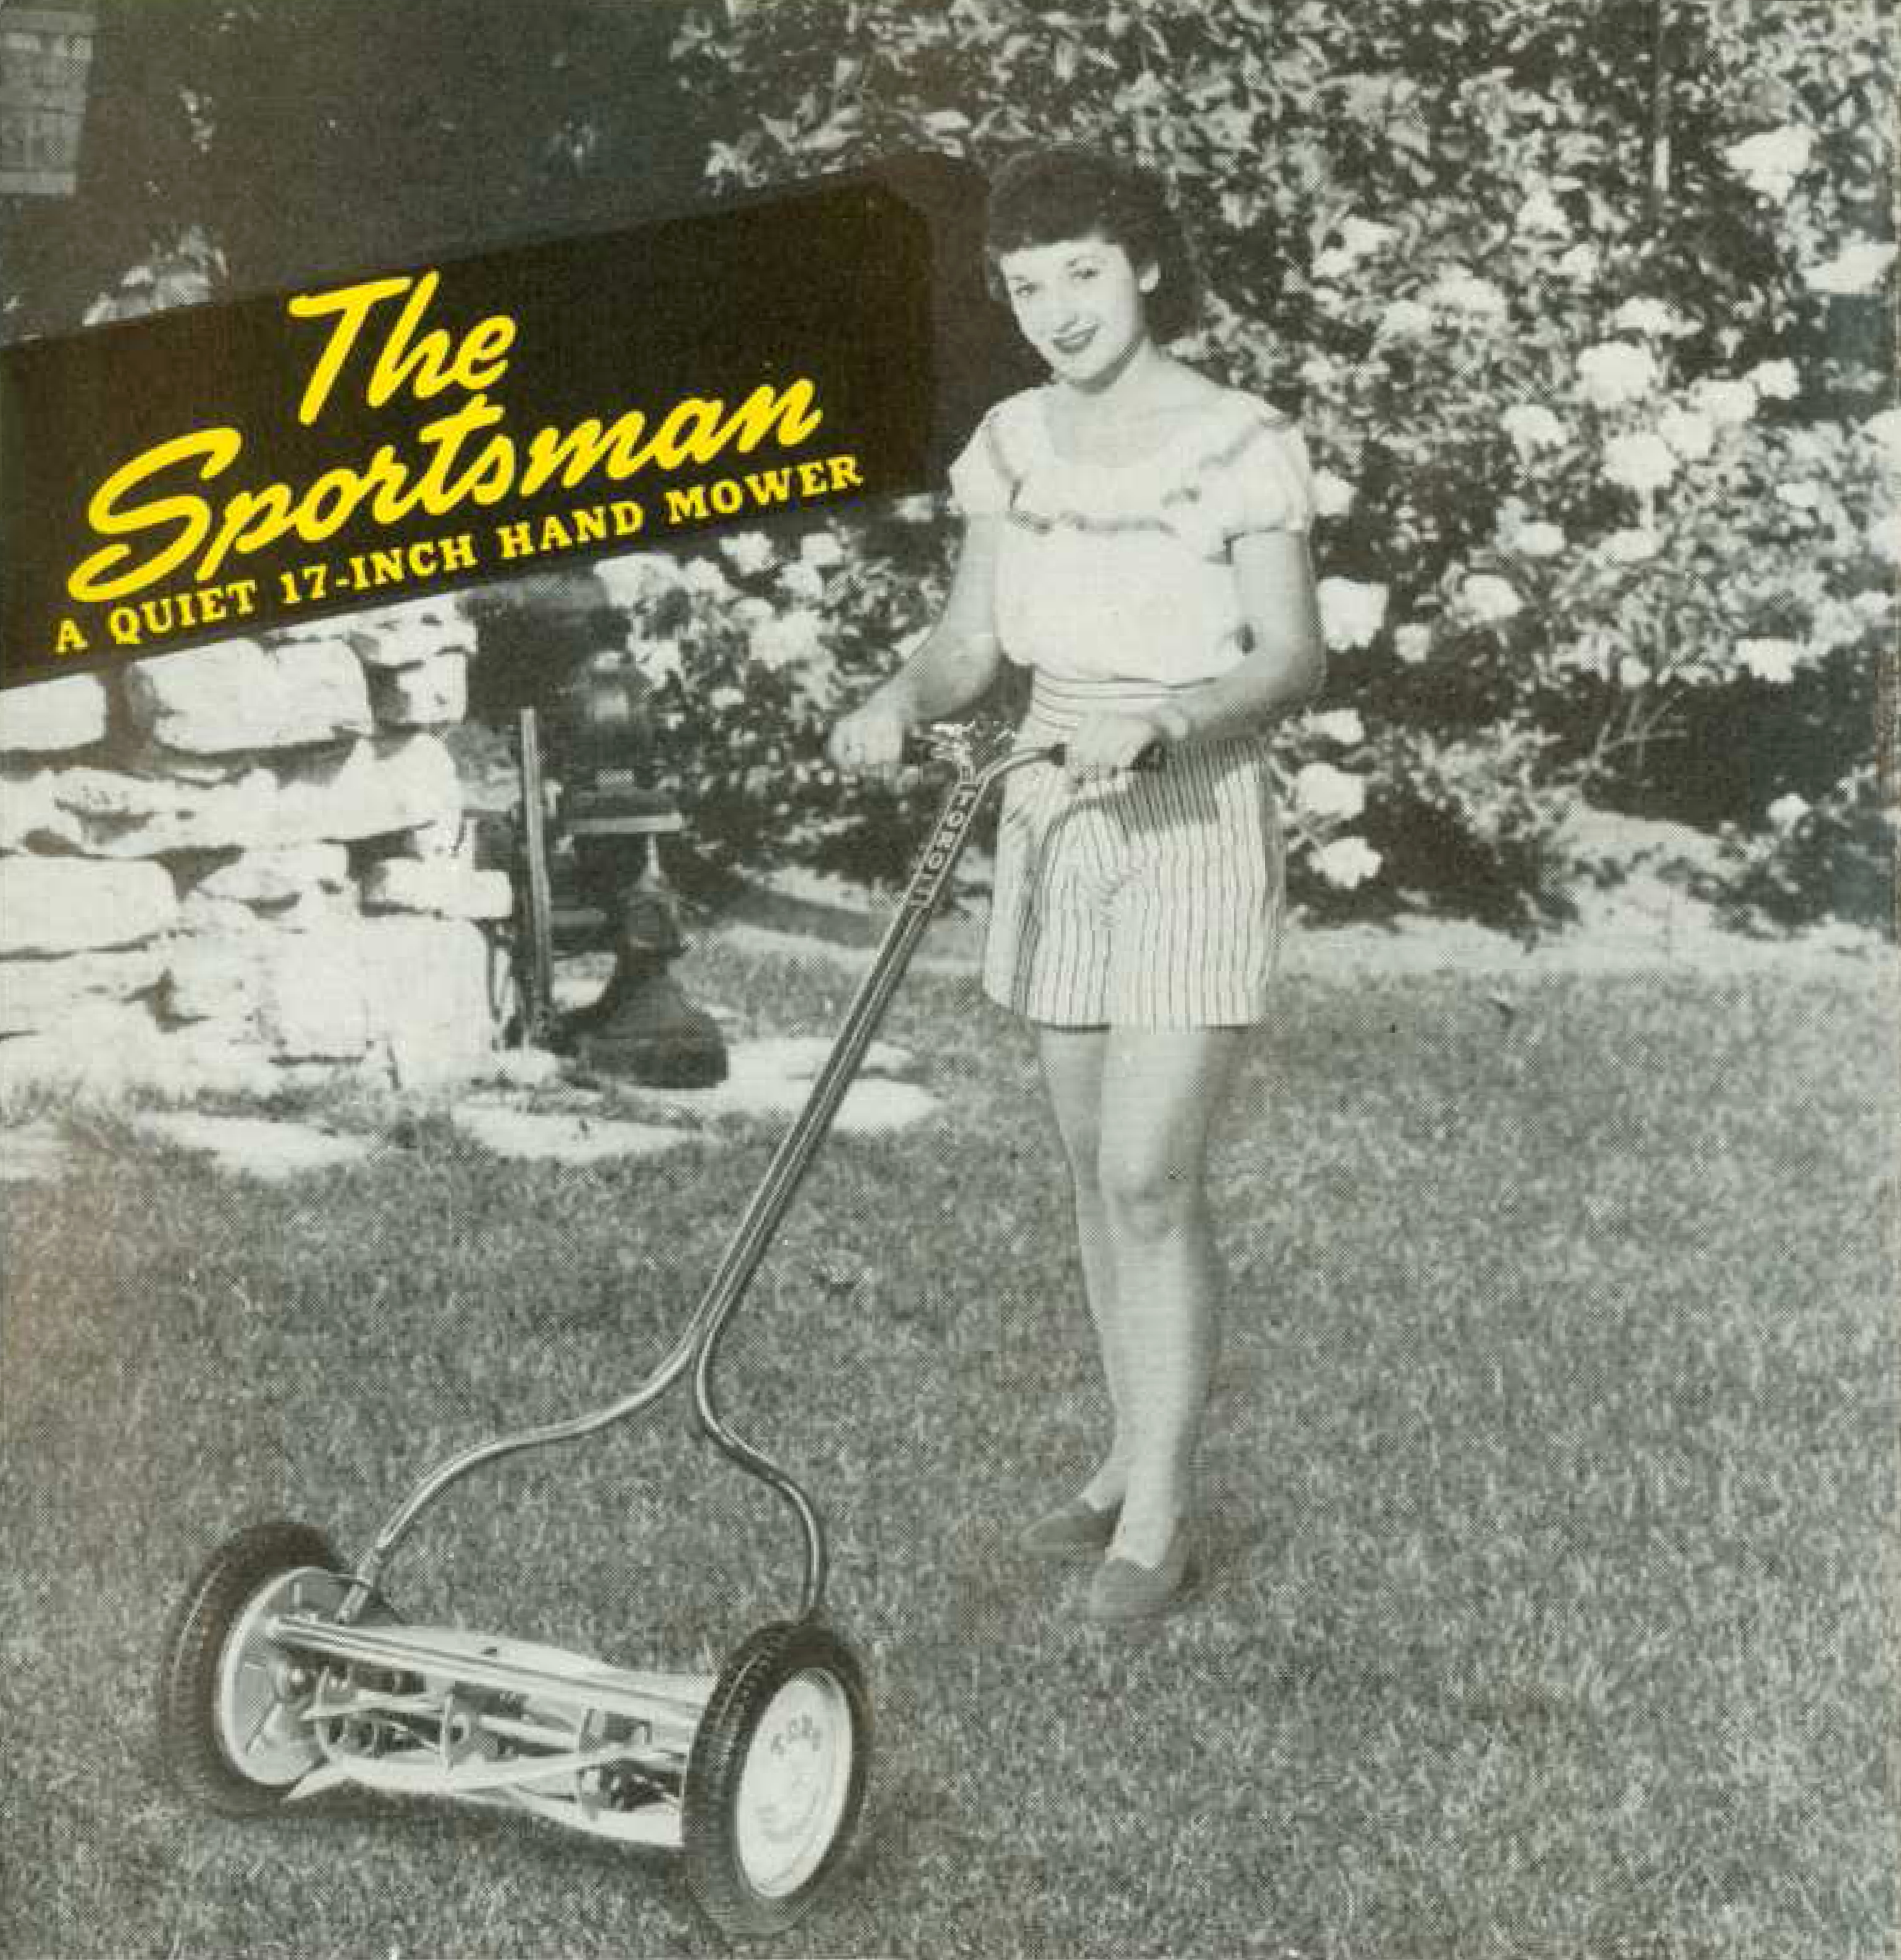 "Black and white photograph of a woman using a hand mower, which text identifies as ""The Sportsman""."